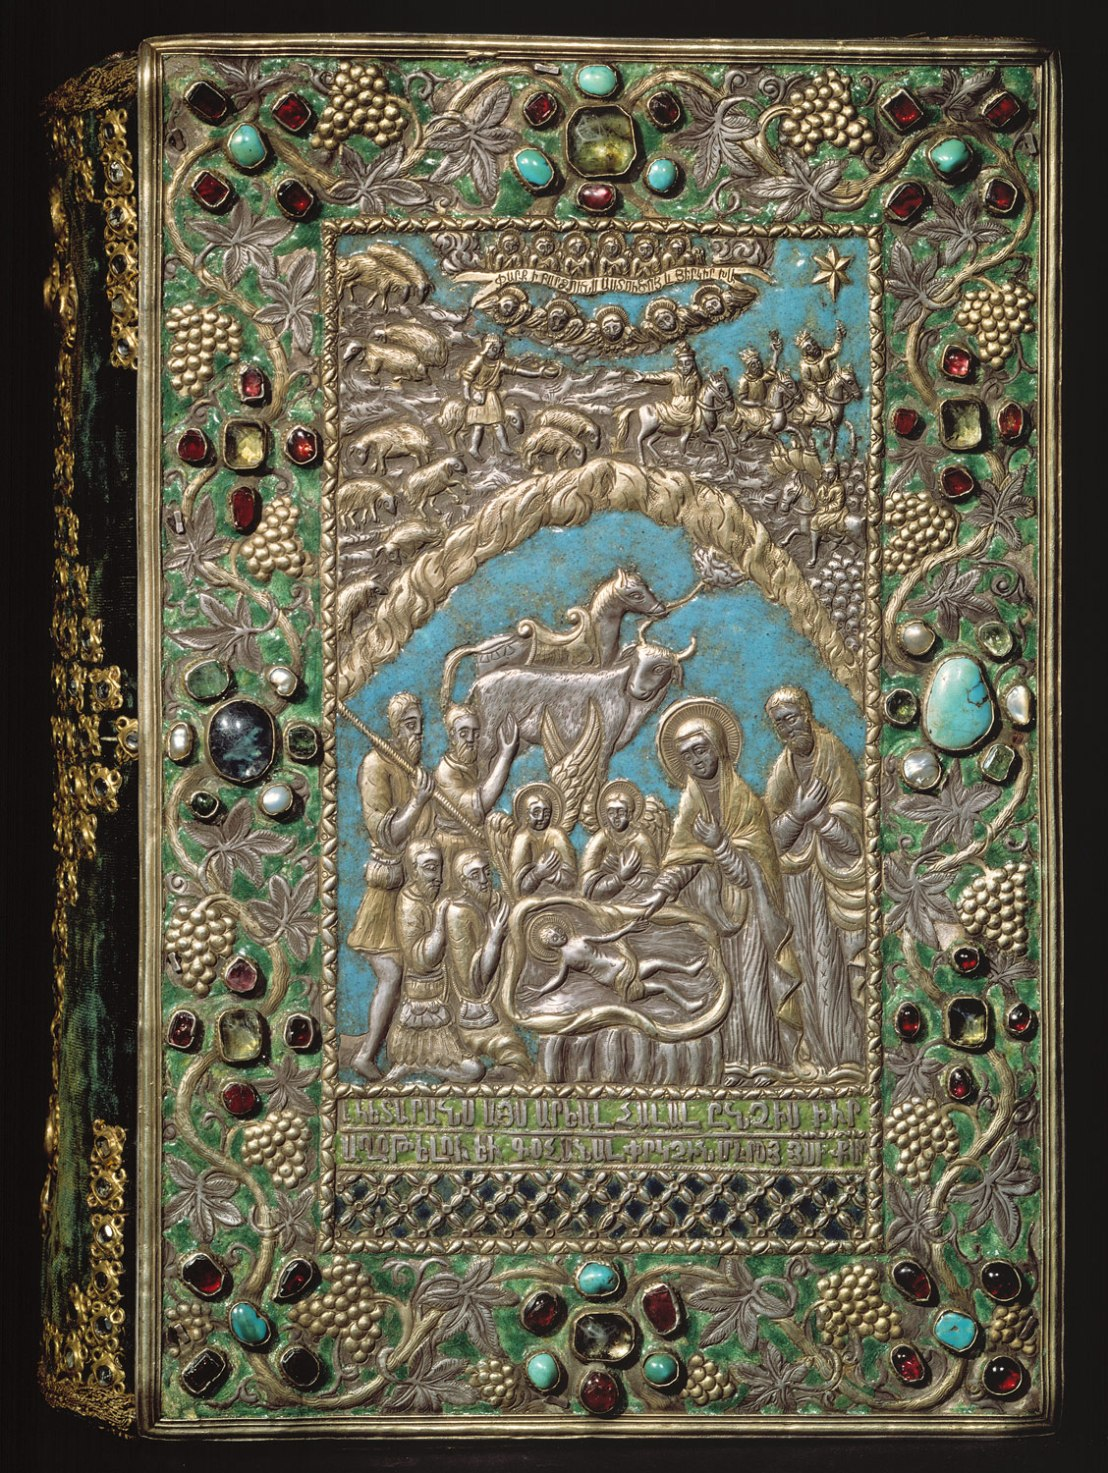 """This jeweled, enameled, and gilt-silver repoussé cover for a 13th century Armenian gospel is an examples of the work produced in the late seventeenth-century silversmith workshop of Kayseri. Both front and back cover are signed, informing us that they were made in Kayseri in 1691 by Astuatsatur Shahamir. The central image on the front cover depicts the Adoration of the Shepherds, and above, the magi following the star. Amid angels, the banner in the sky proclaims, """"Glory to God in the highest and on Earth peace."""" The cover was attached to a gospel copied and illuminated by a thirteenth-century scribe named Grigor, from Cilicia."""